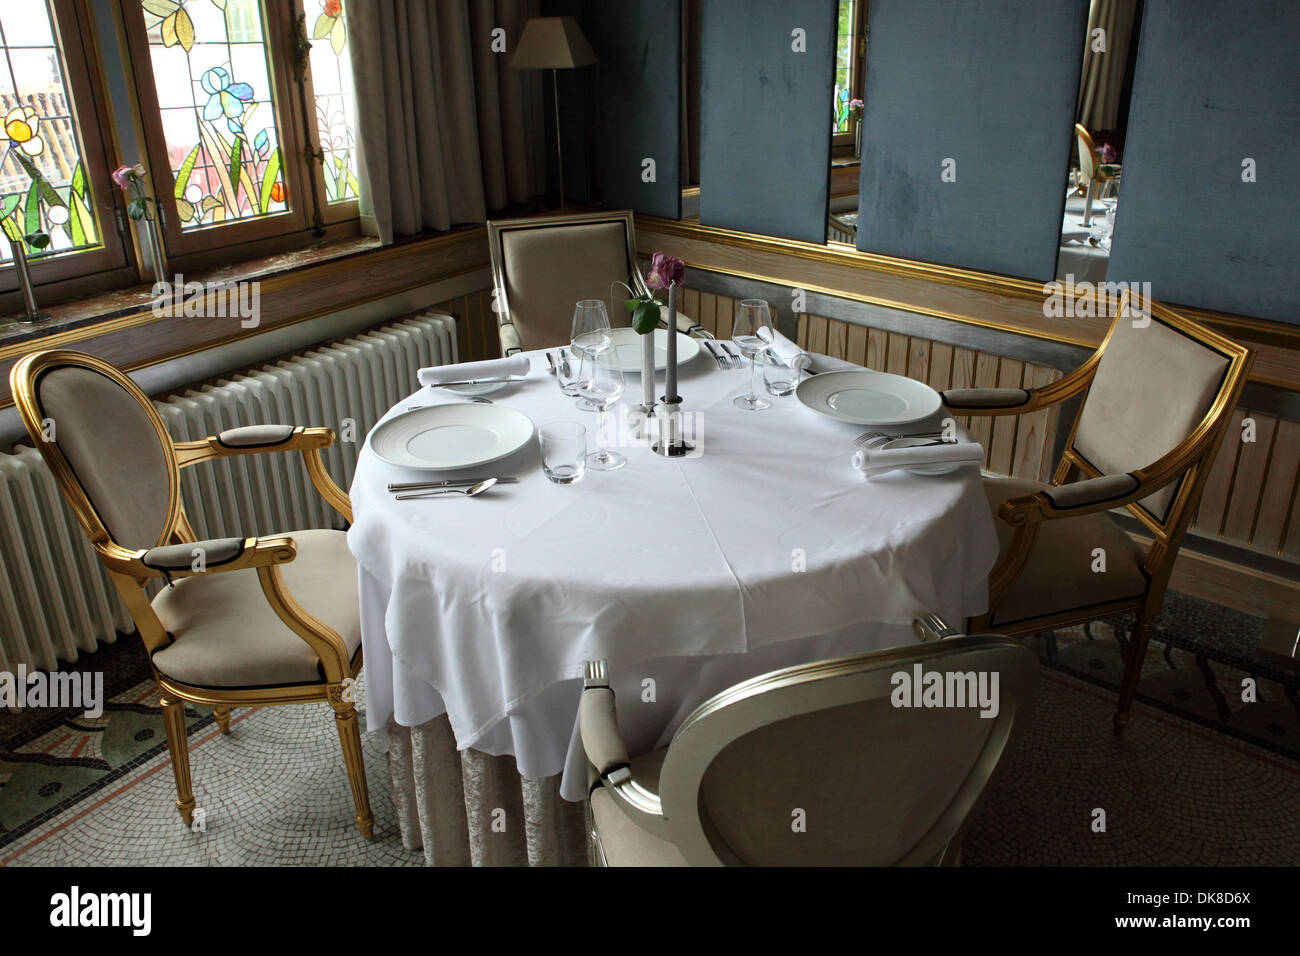 Table Luxembourg An Unset Dinner Table In Luxembourg Stock Photo 63495570 Alamy